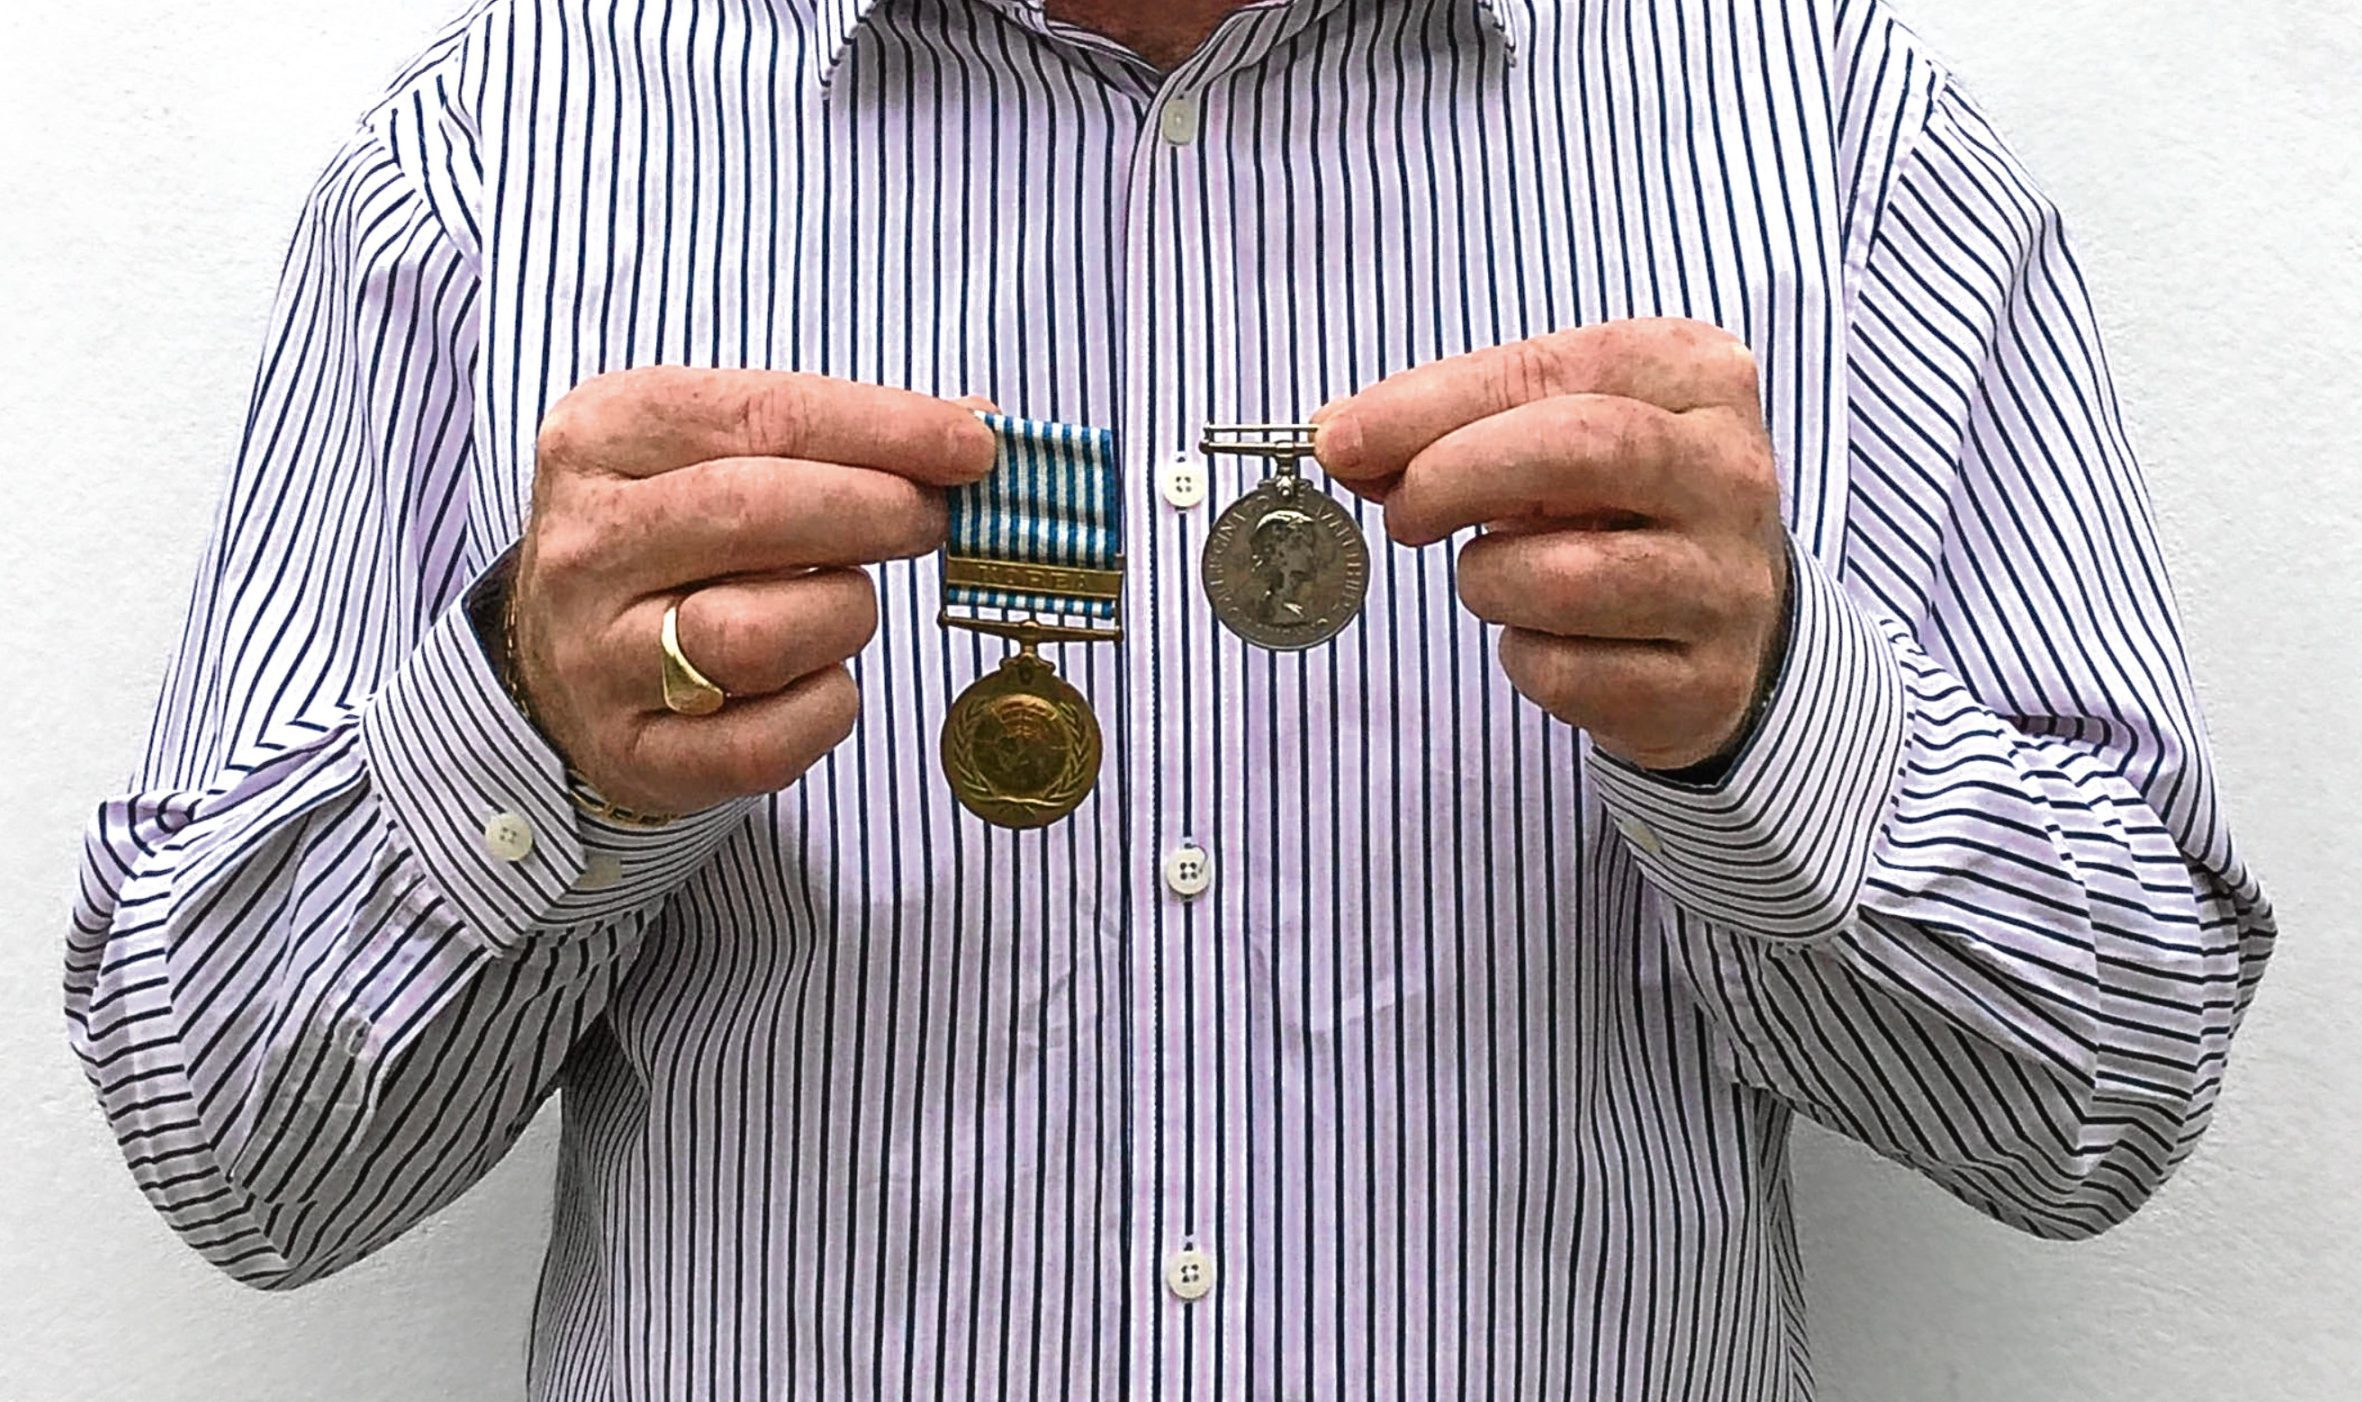 Peter Cottingham, from Glasgow, recently decided to mount his late father Andrew's war medals